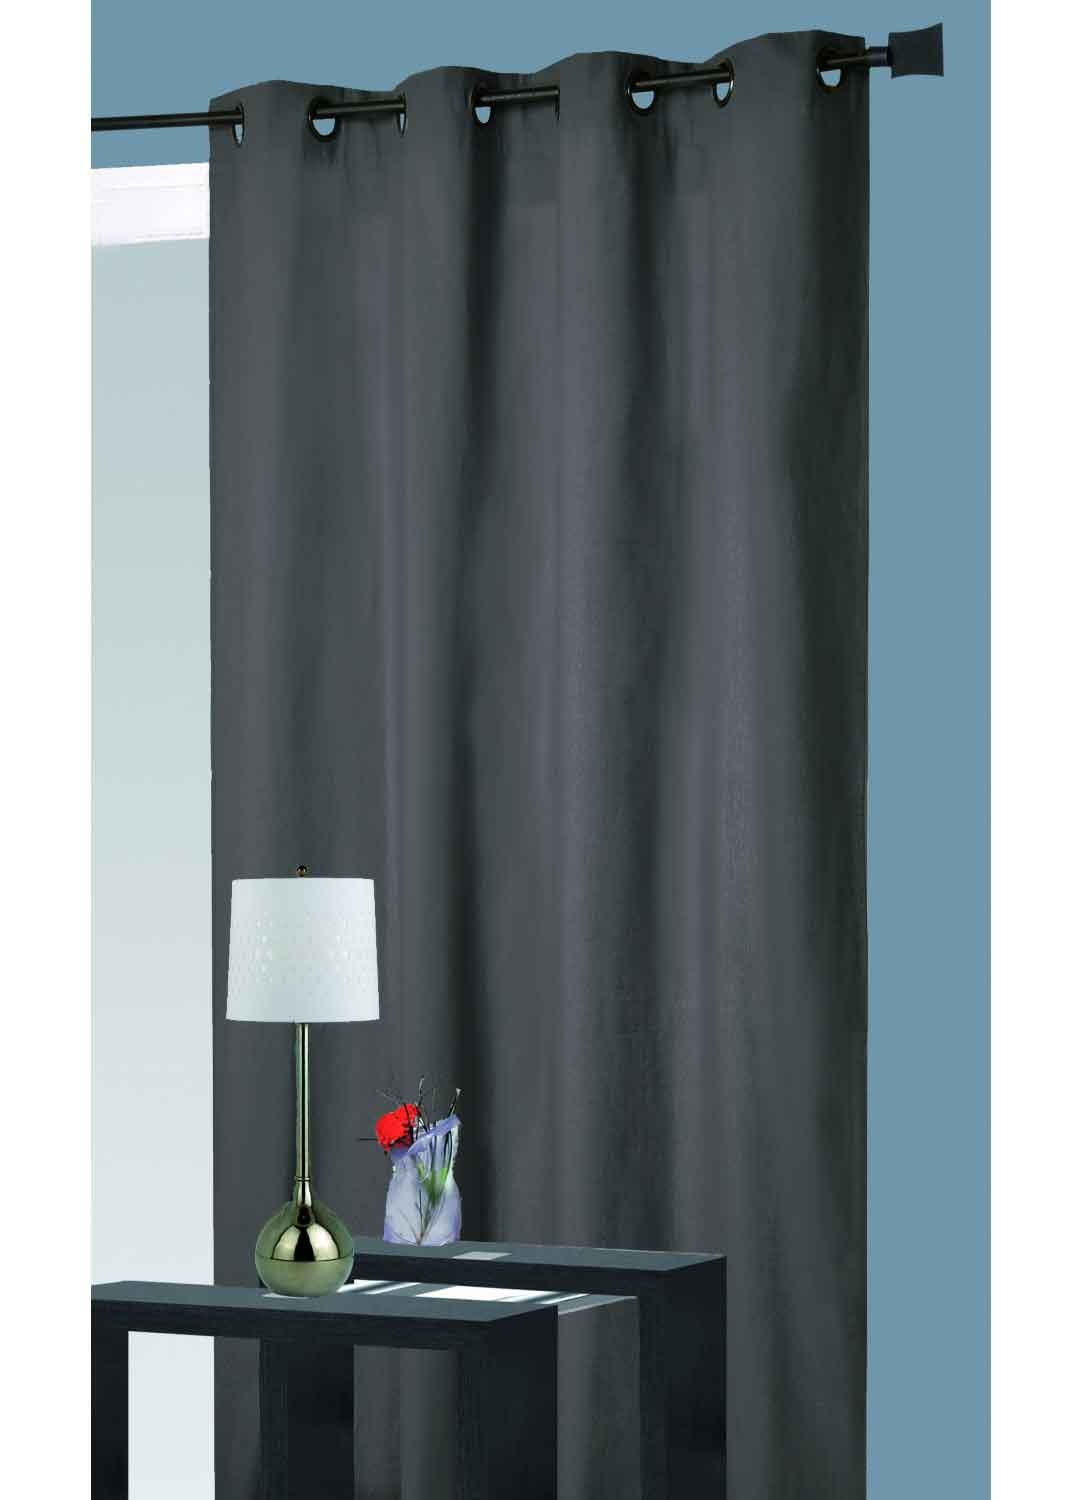 rideau isolant thermique anthracite perle noir rouge taupe lin gris ecru. Black Bedroom Furniture Sets. Home Design Ideas